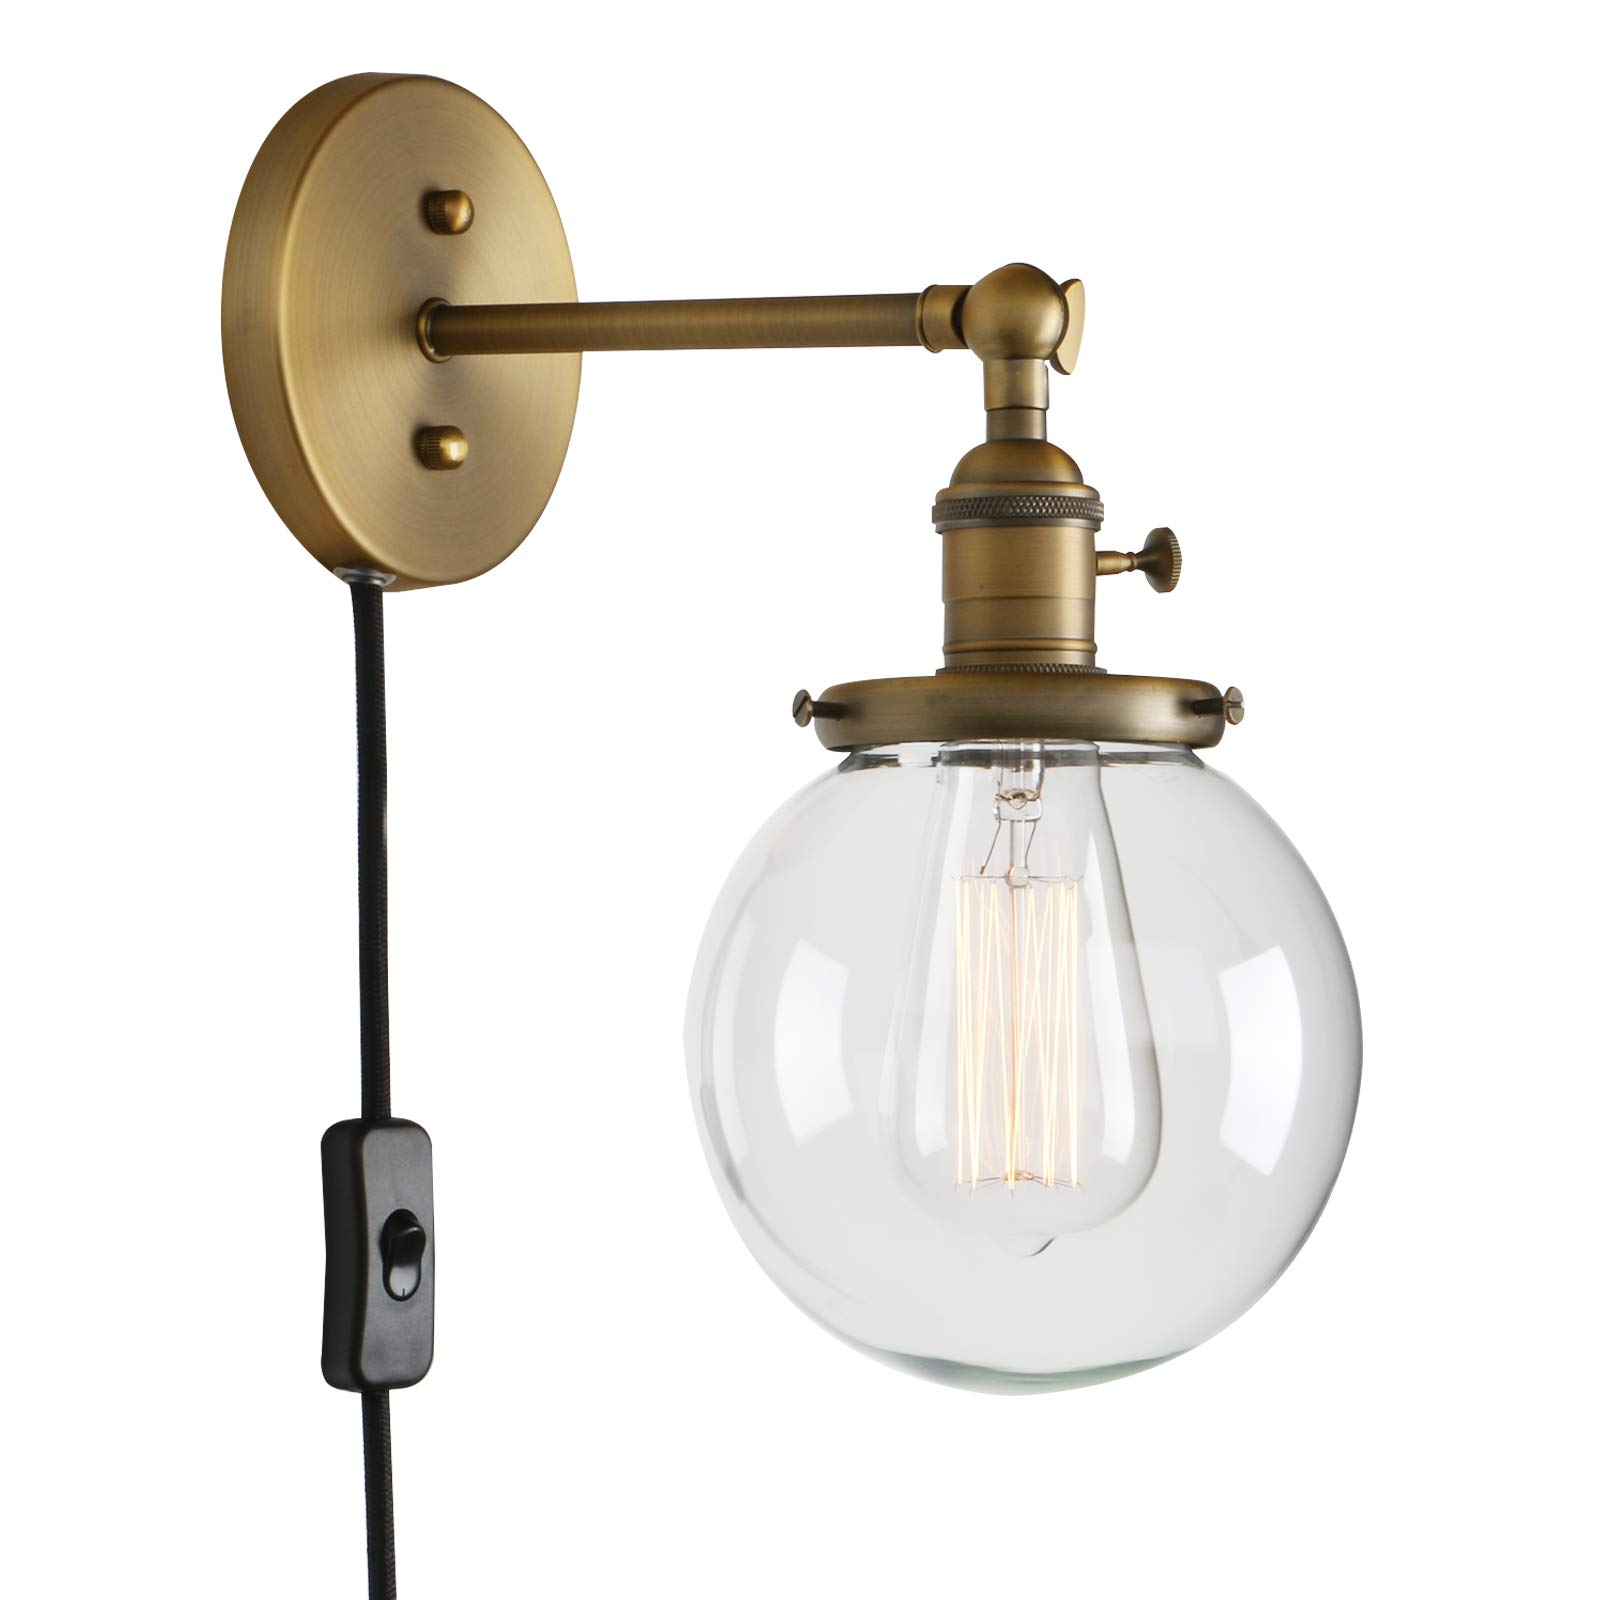 Permo 1-Light Plug in On/Off Switch Wall Sconce with Mini 5.9'' Round Globe Clear Glass Shade Vintage Industrial Wall lamp Light Fixture (Antique)